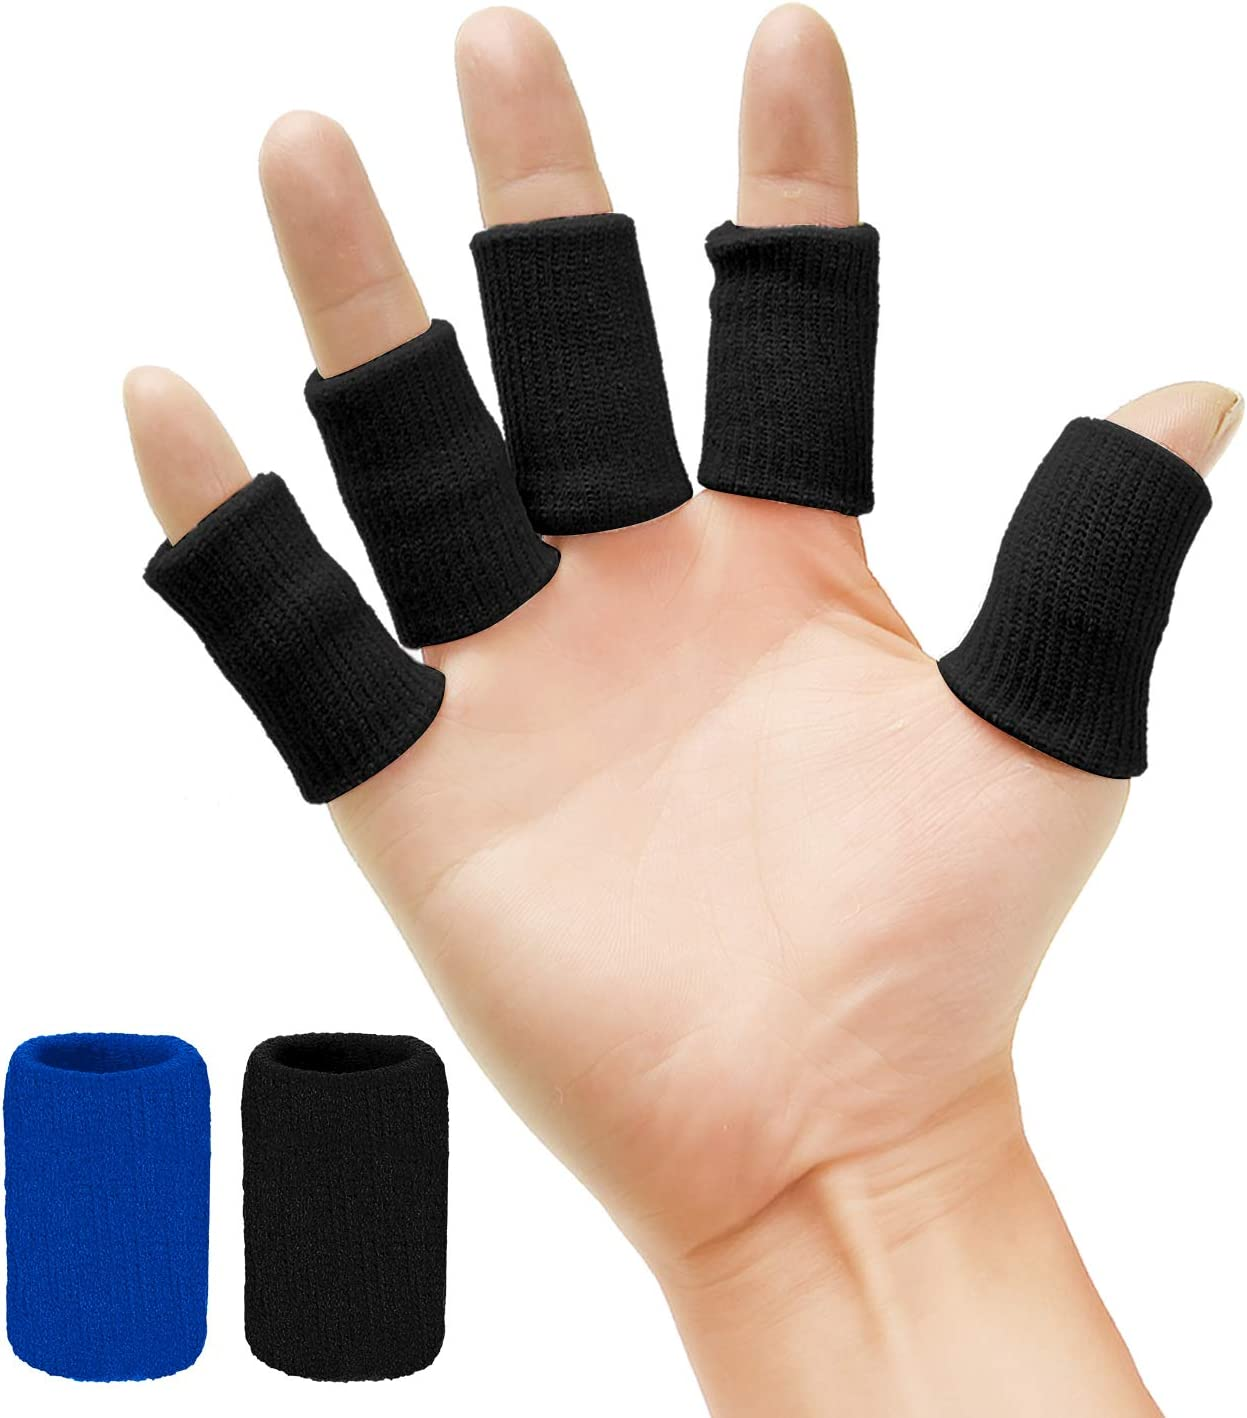 Senkary 20 Pieces Finger Sleeves Thumb Brace Our shop Super special price most popular Protectors Support